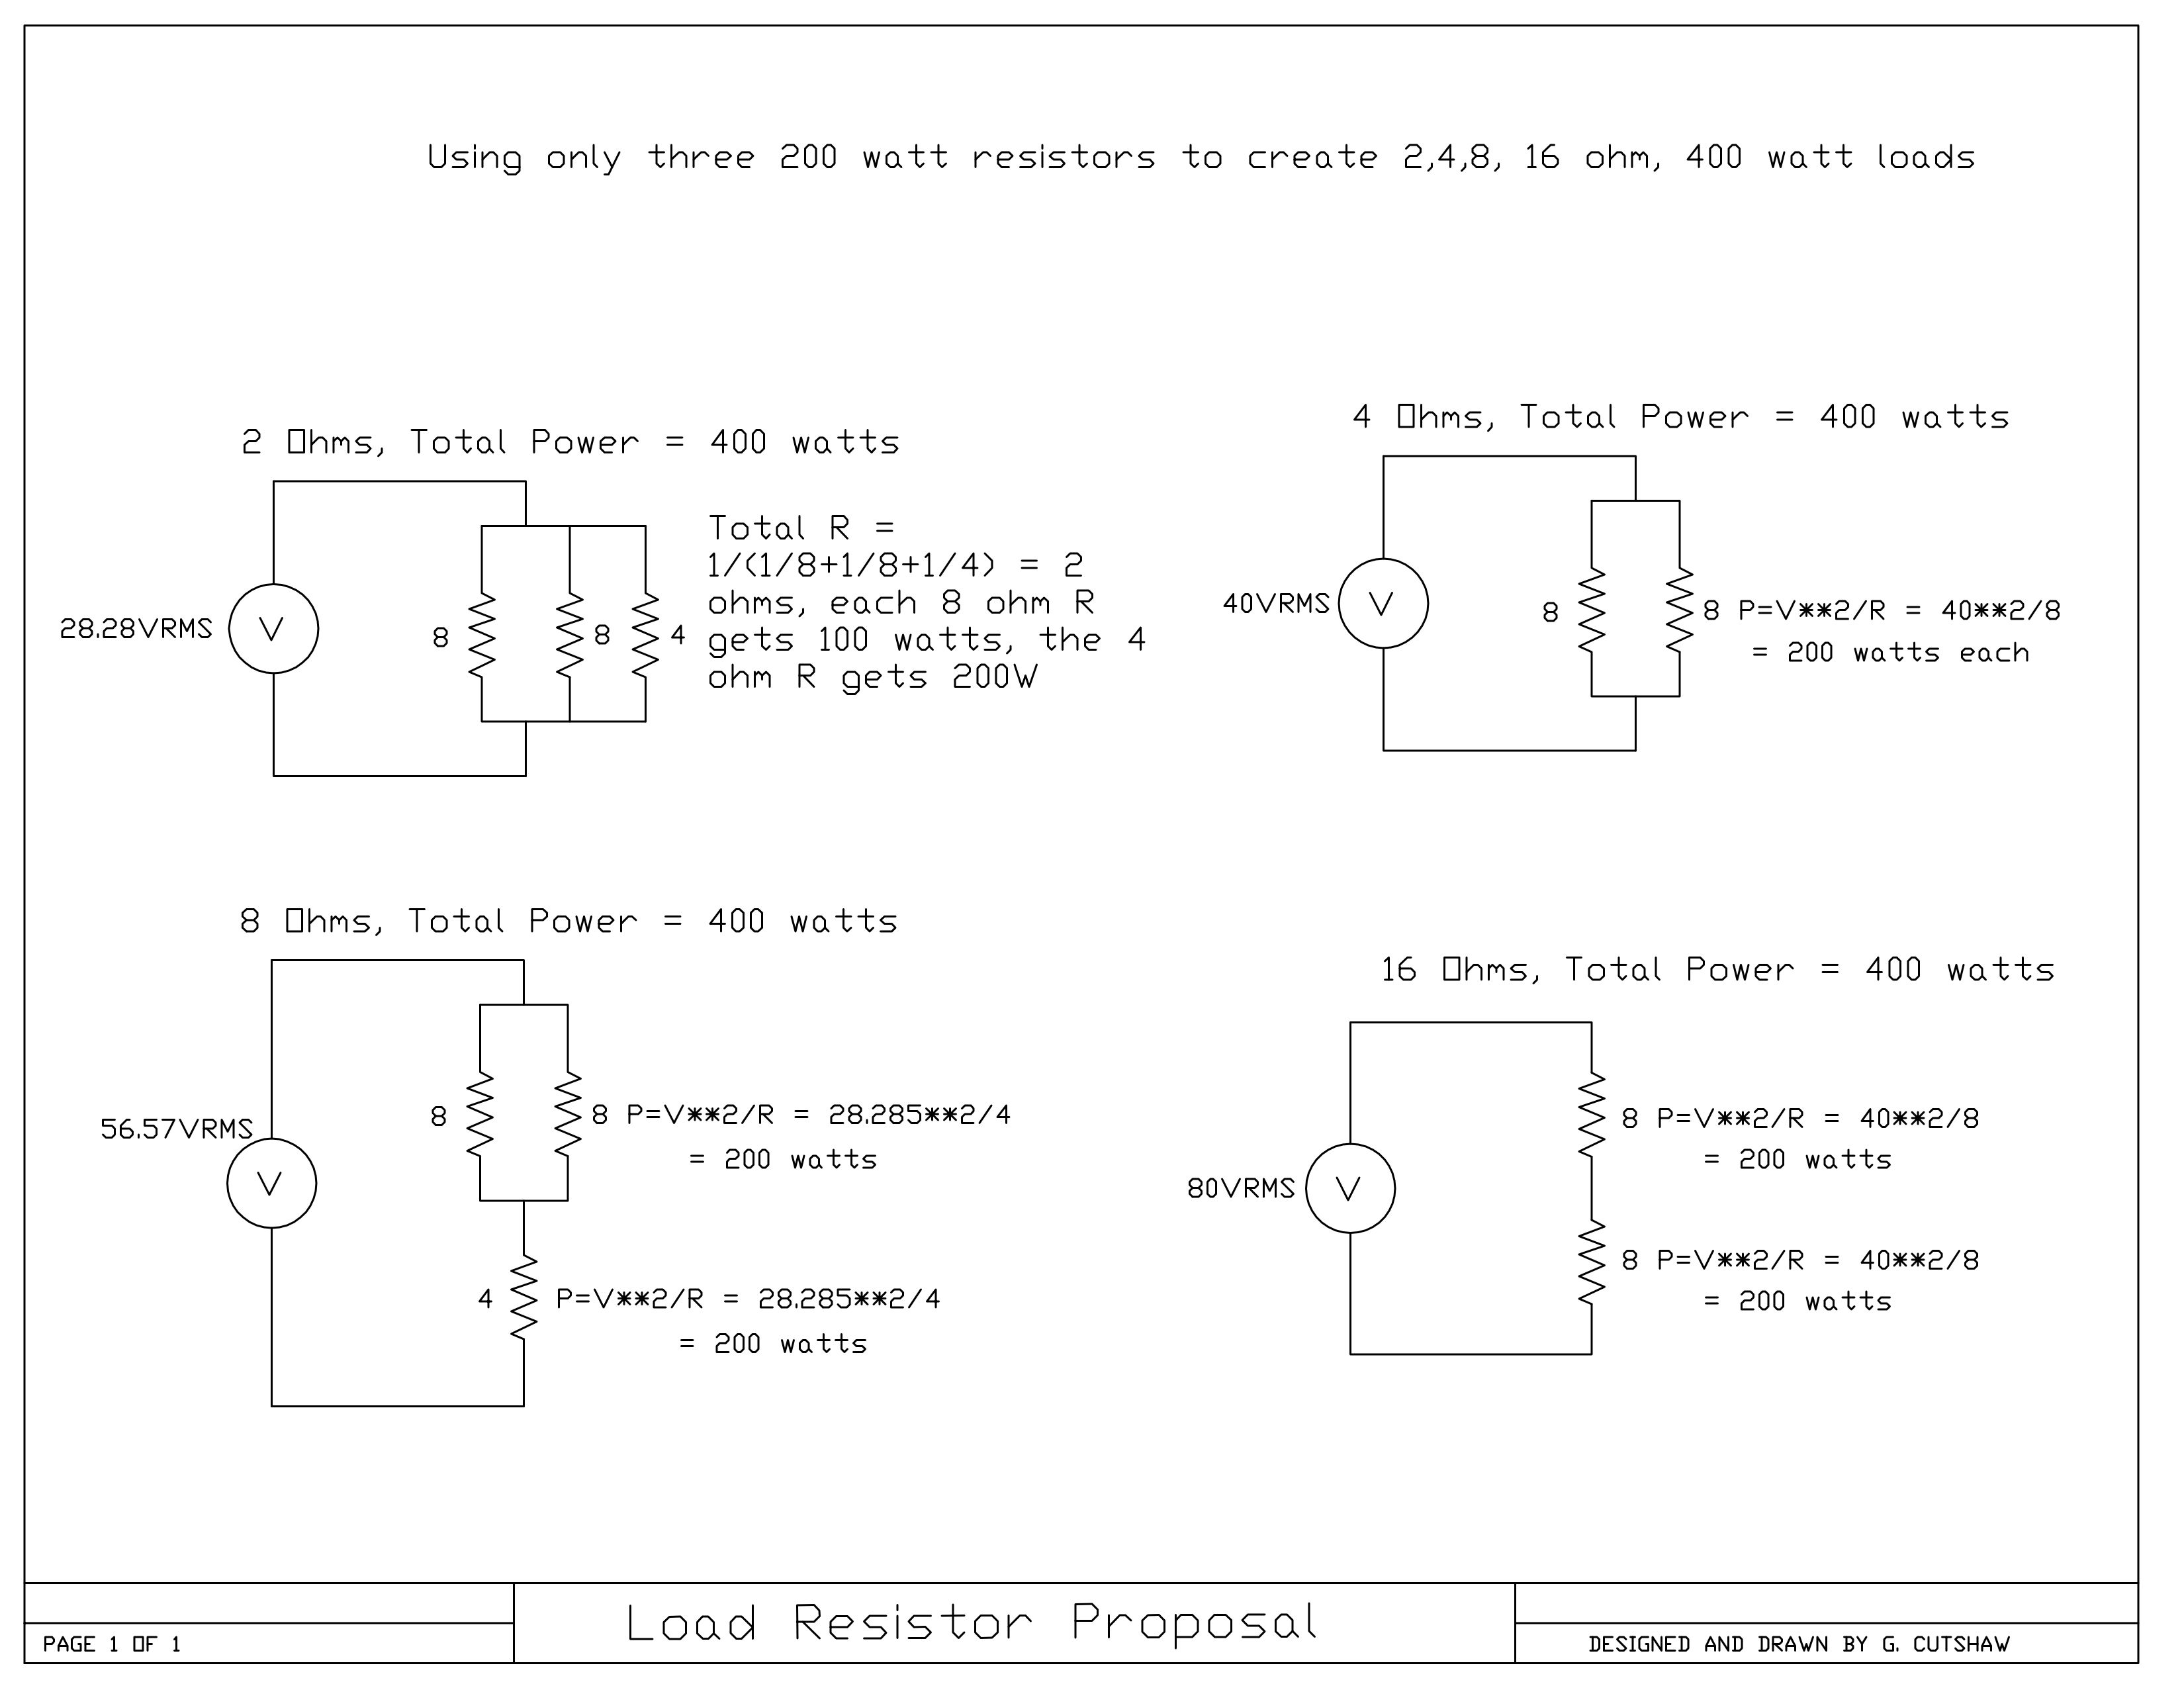 Allen Amplification Encore Amplifier Review Impedance Switch Wiring Diagram For Bench Testing I Used An Audio Signal Generator 200 Mhz Digital Scope Variac Set At 120 Vac With The Amp 8 Ohms And Dummy